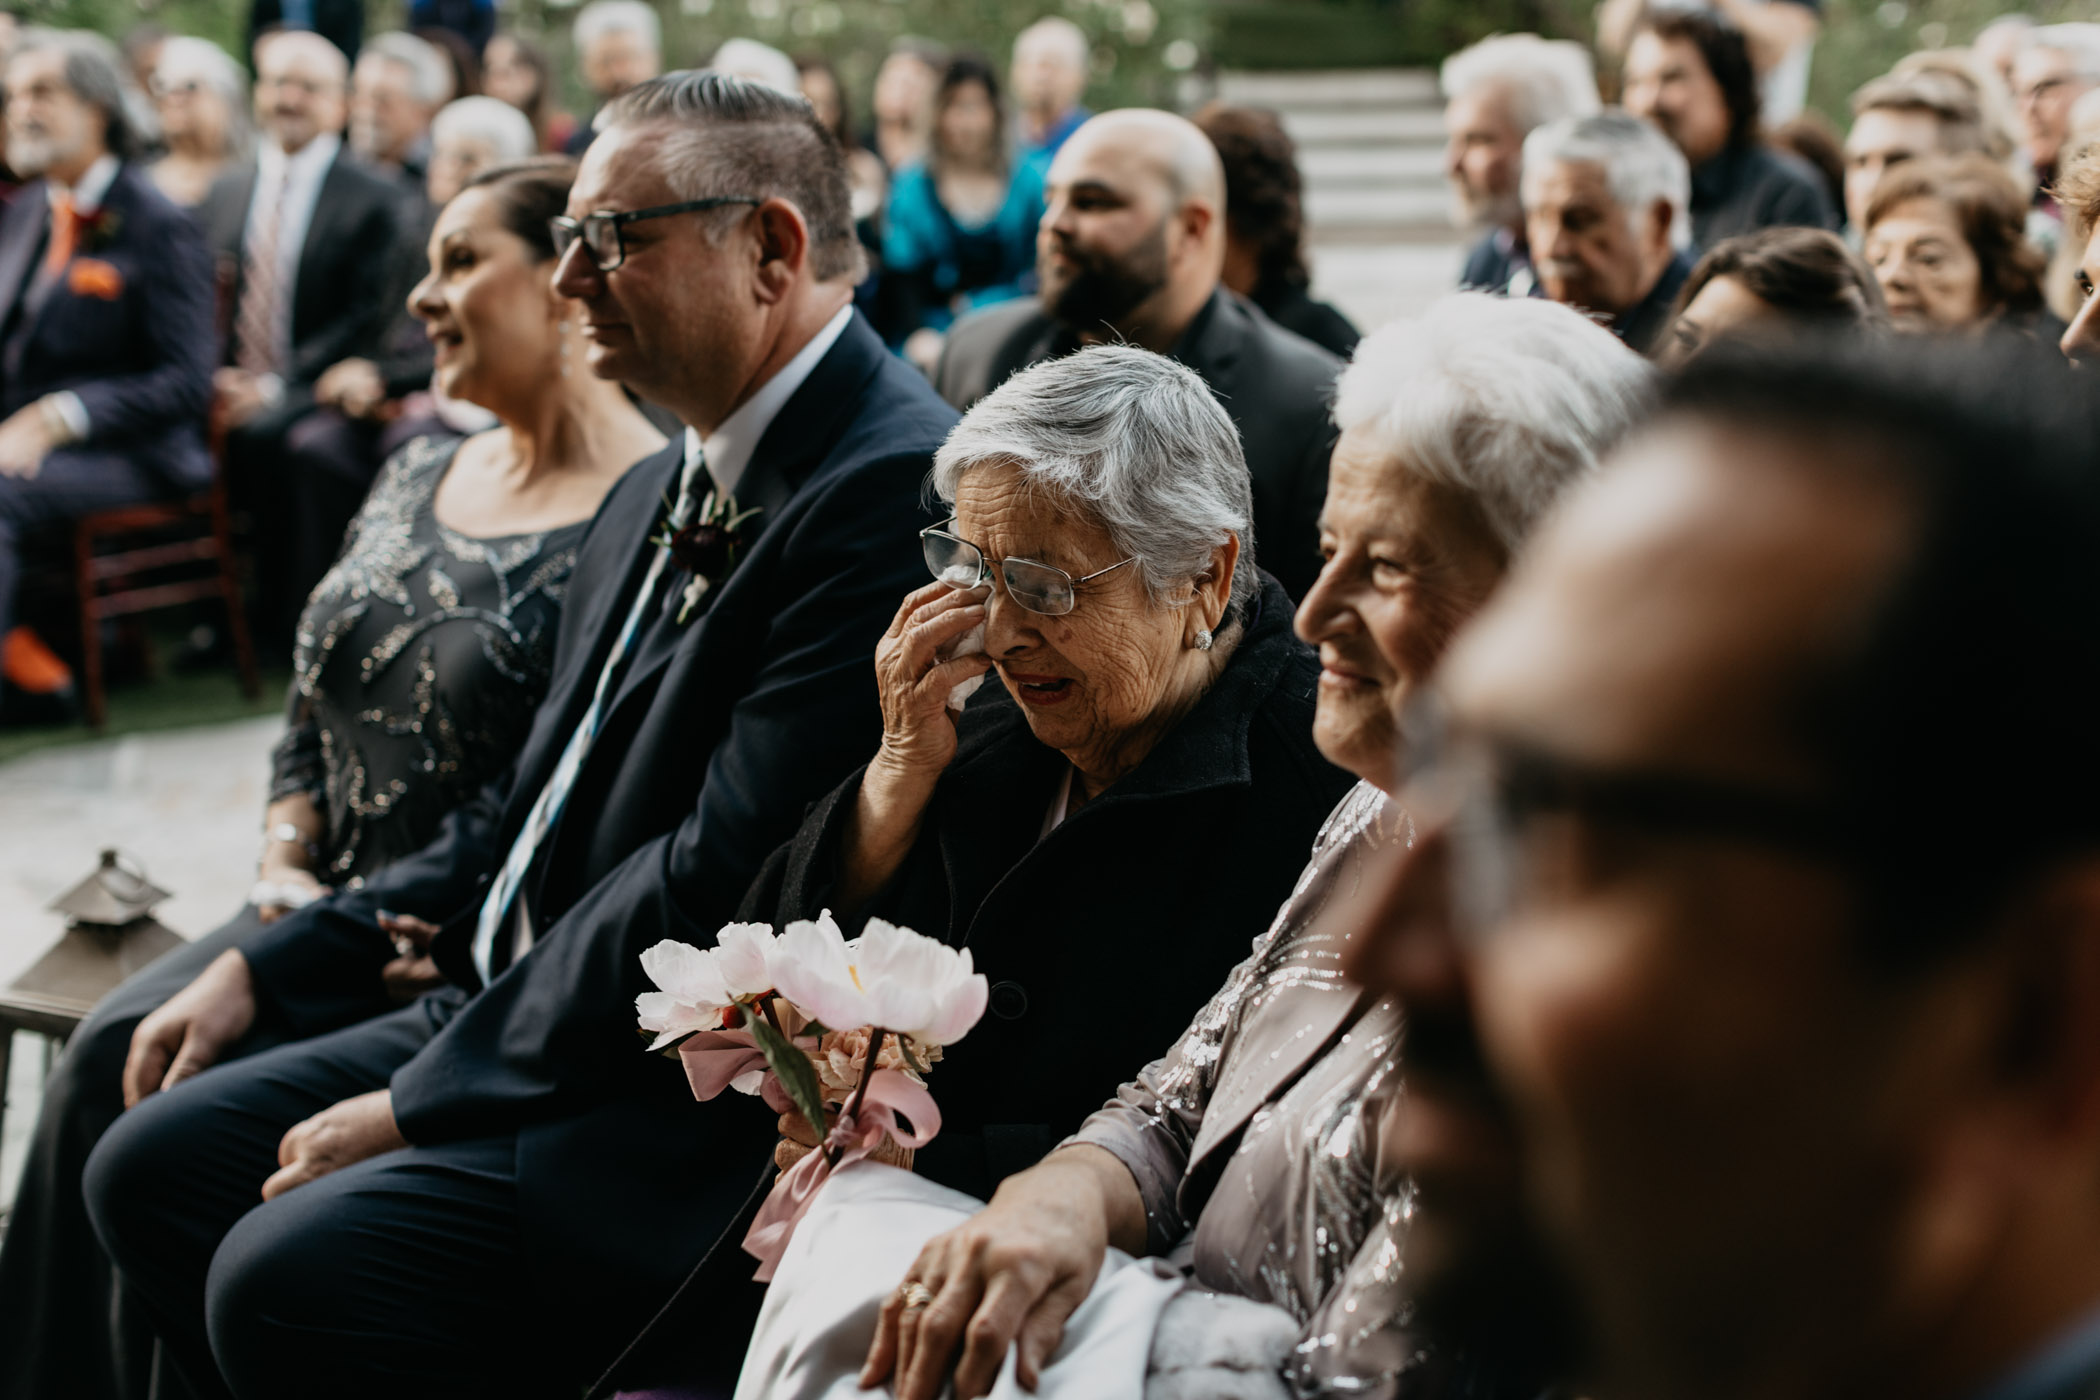 Brides grandma getting emotional during their ceremony